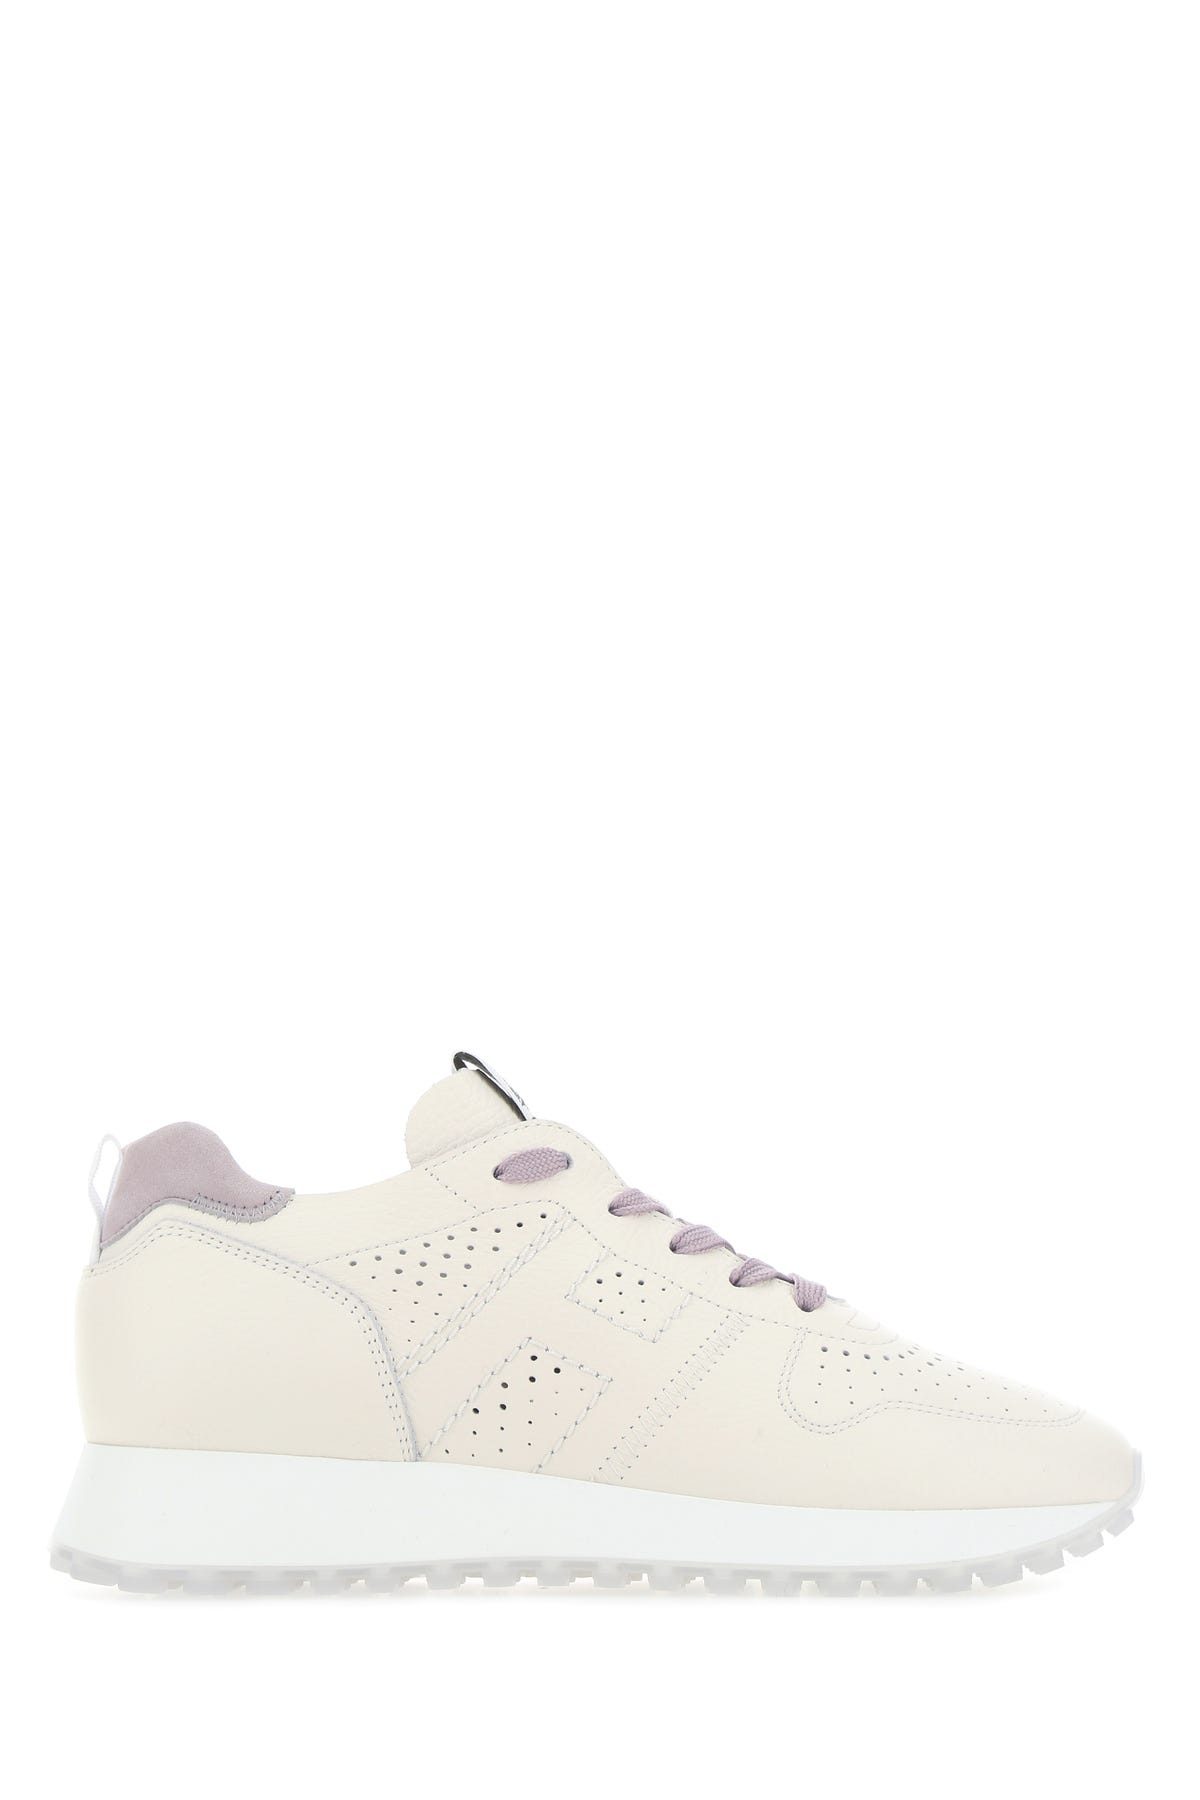 Shop Hogan Ivory Leather H429 Sneakers Nd Donna 38.5